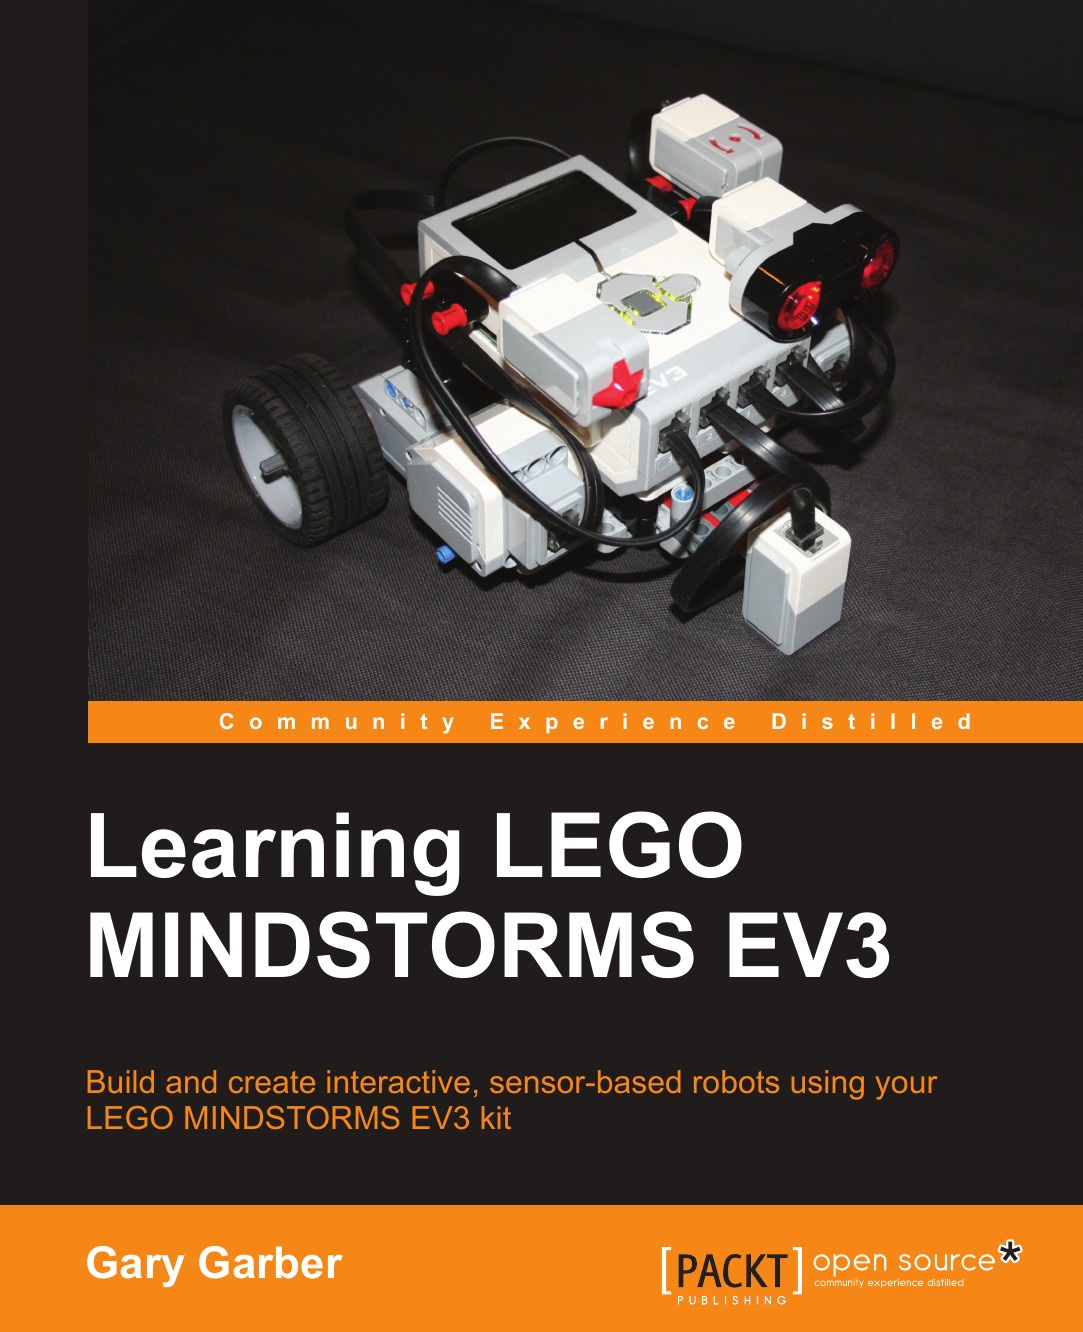 Gary Garber Learning LEGO Mindstorms EV3 1pcs nt600s nt600s st121 nt600s st121 ev3 nt600s st121b nt600s st121b v3 nt600s st121b ev3 nt600s kba01 nt600s cfl01 touchpad